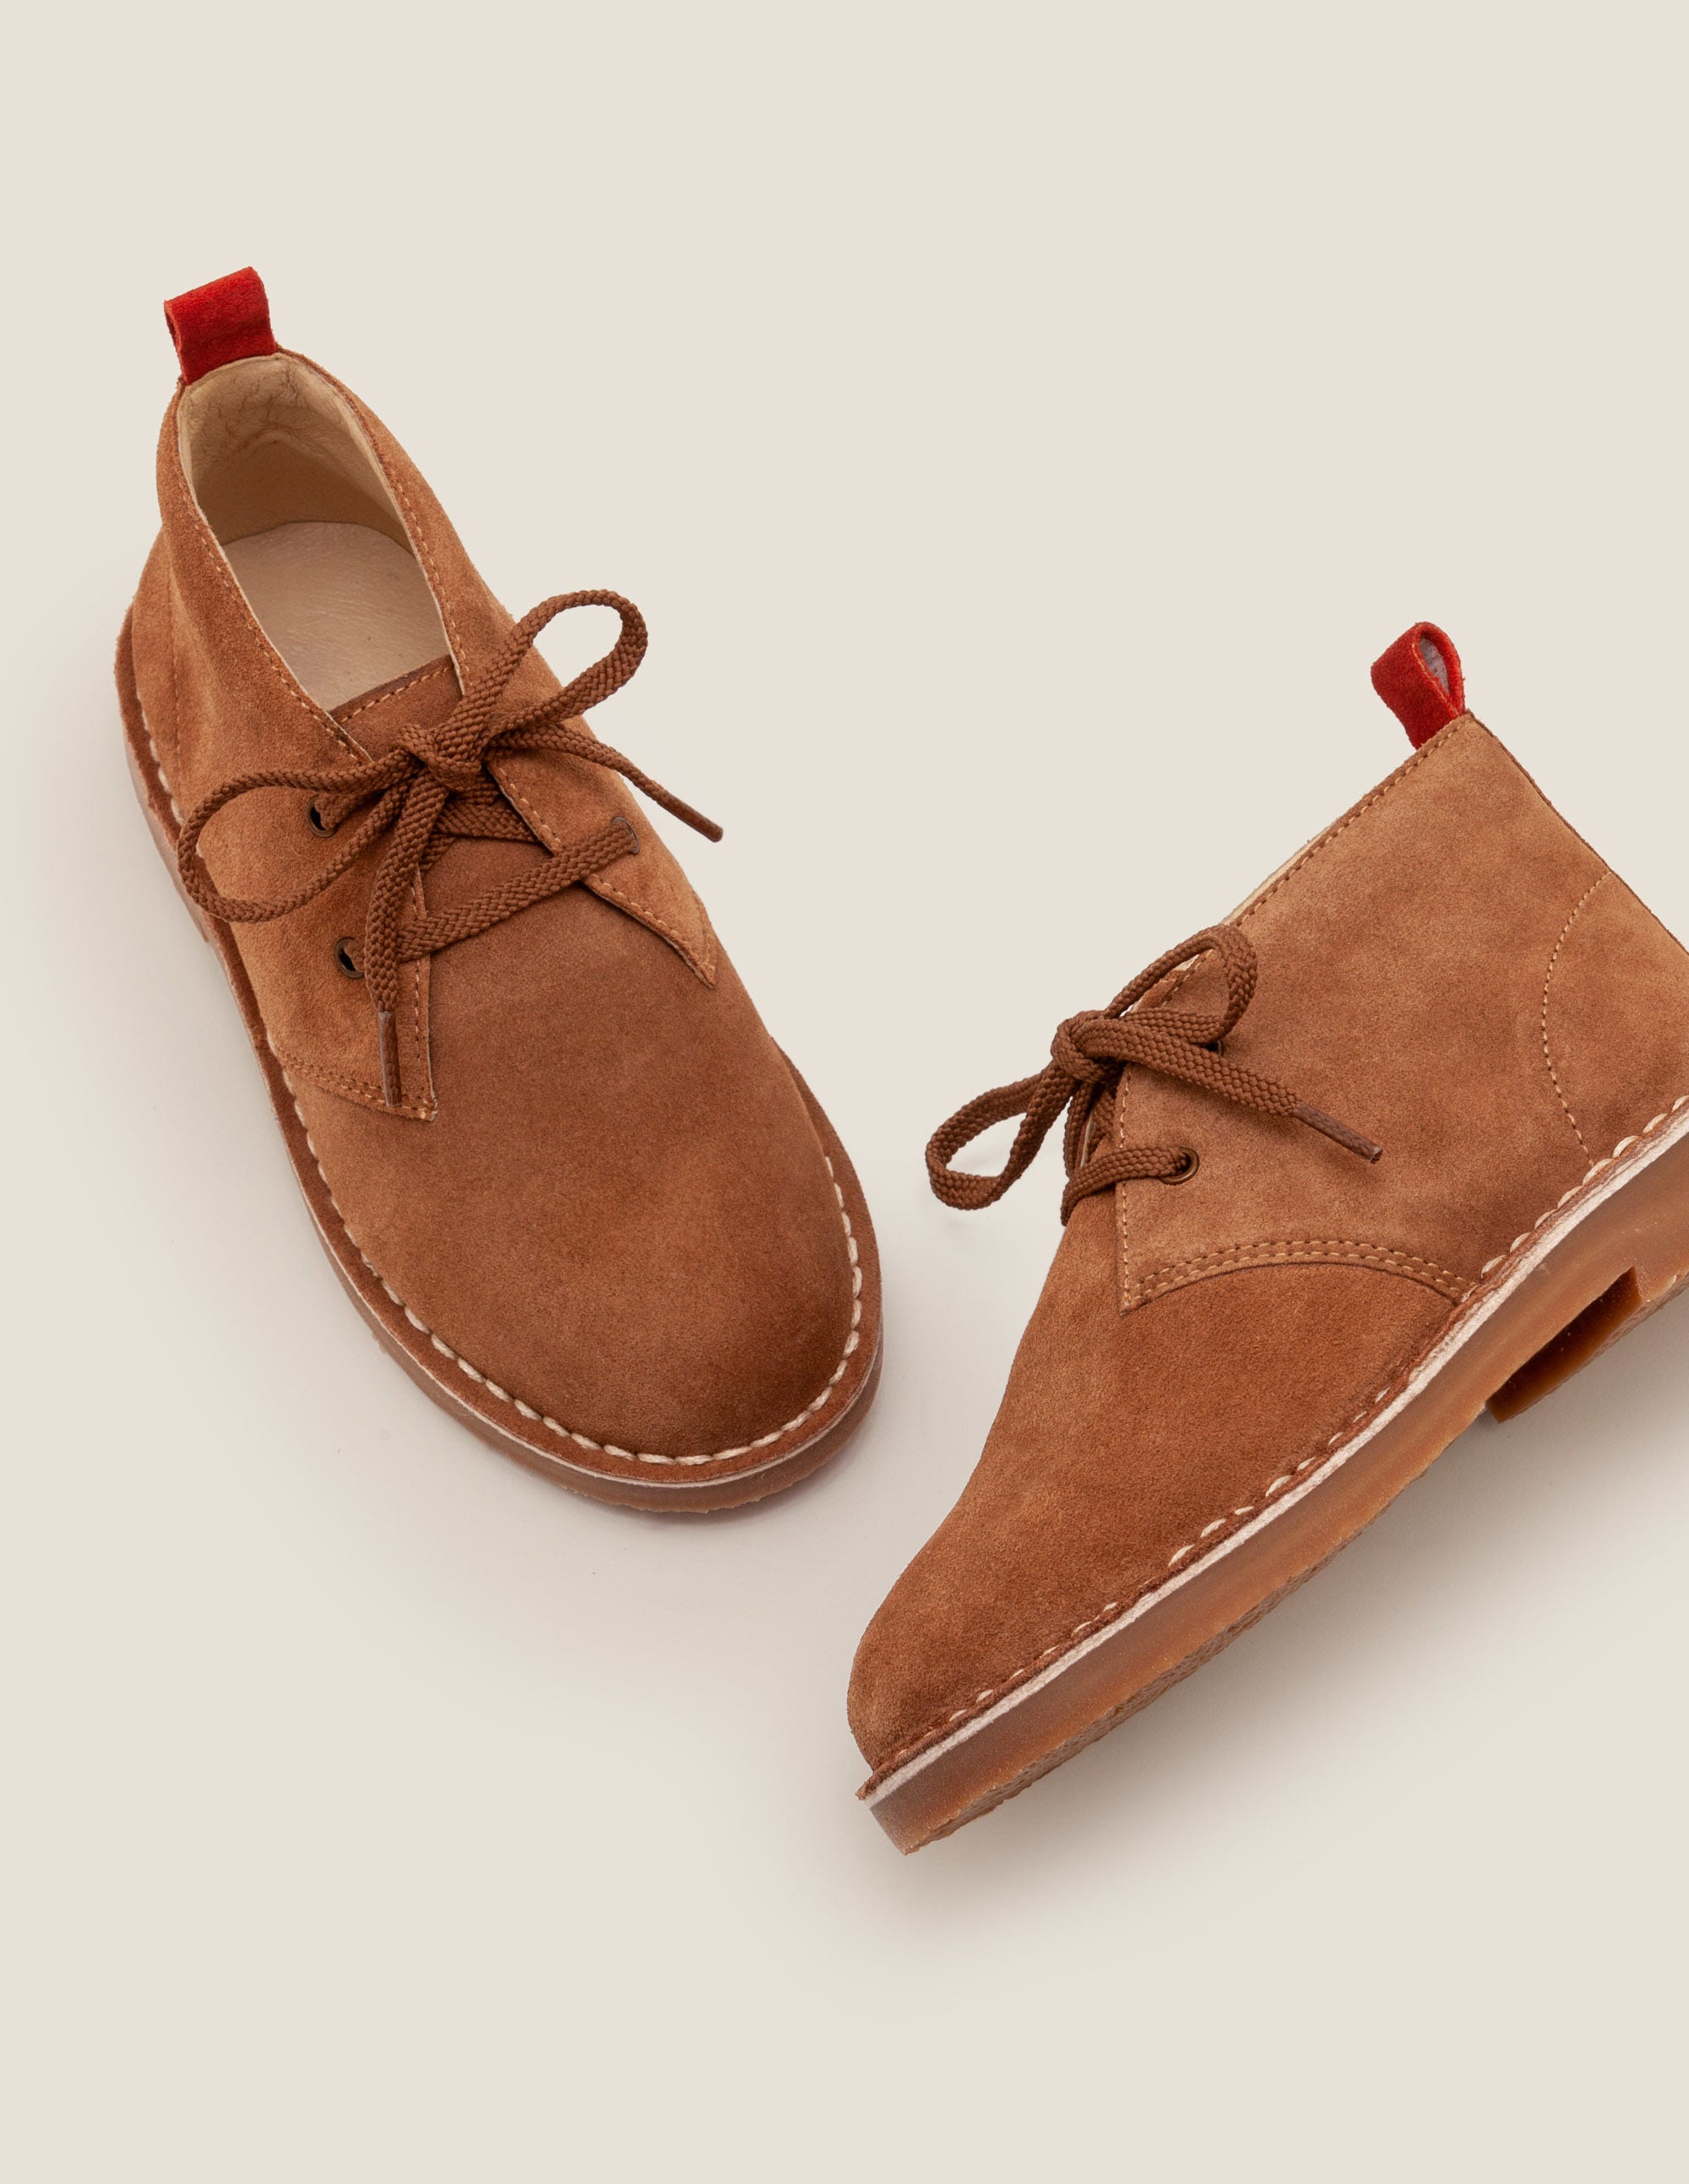 Bottines chukka à lacets TAN Garçon Boden, Brown